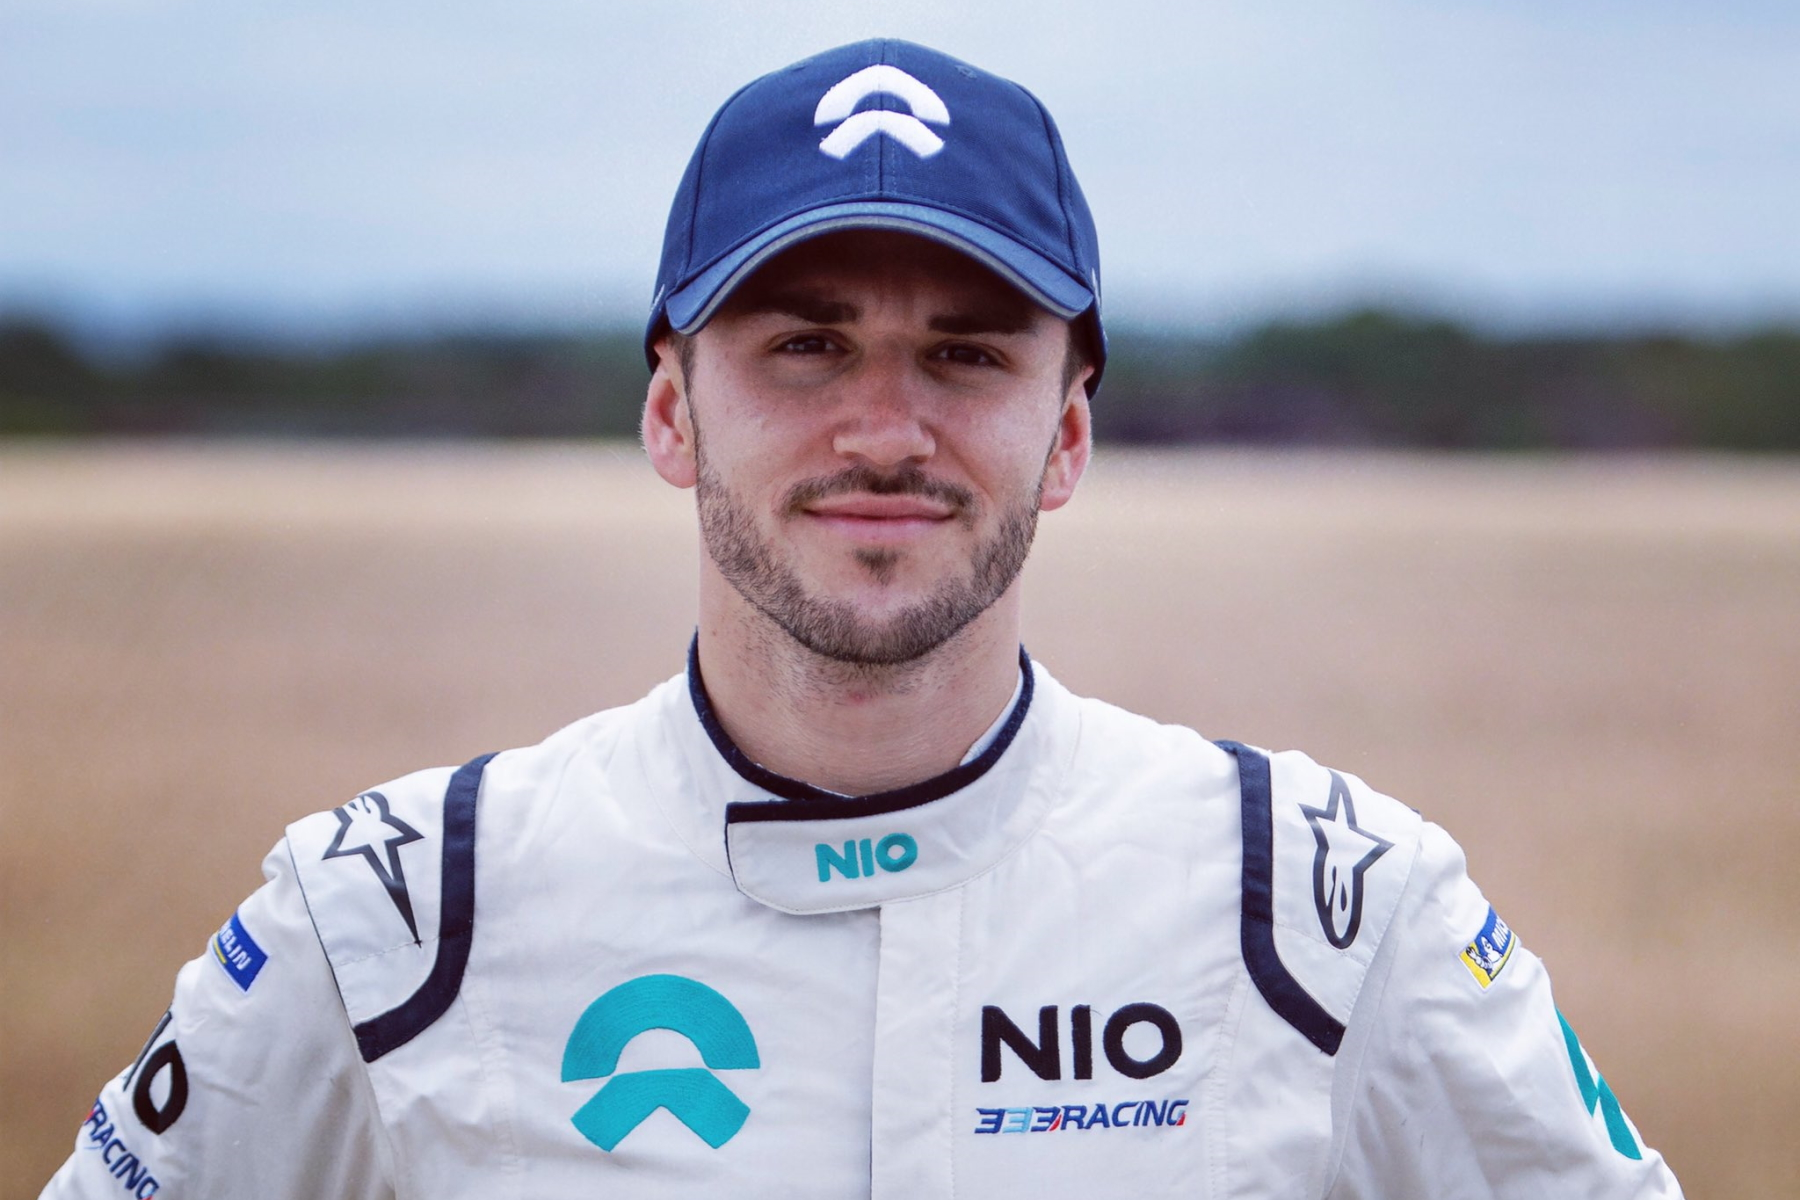 Daniel-Abt-Race-Suit-Nio-333-Abingdon-Airfield